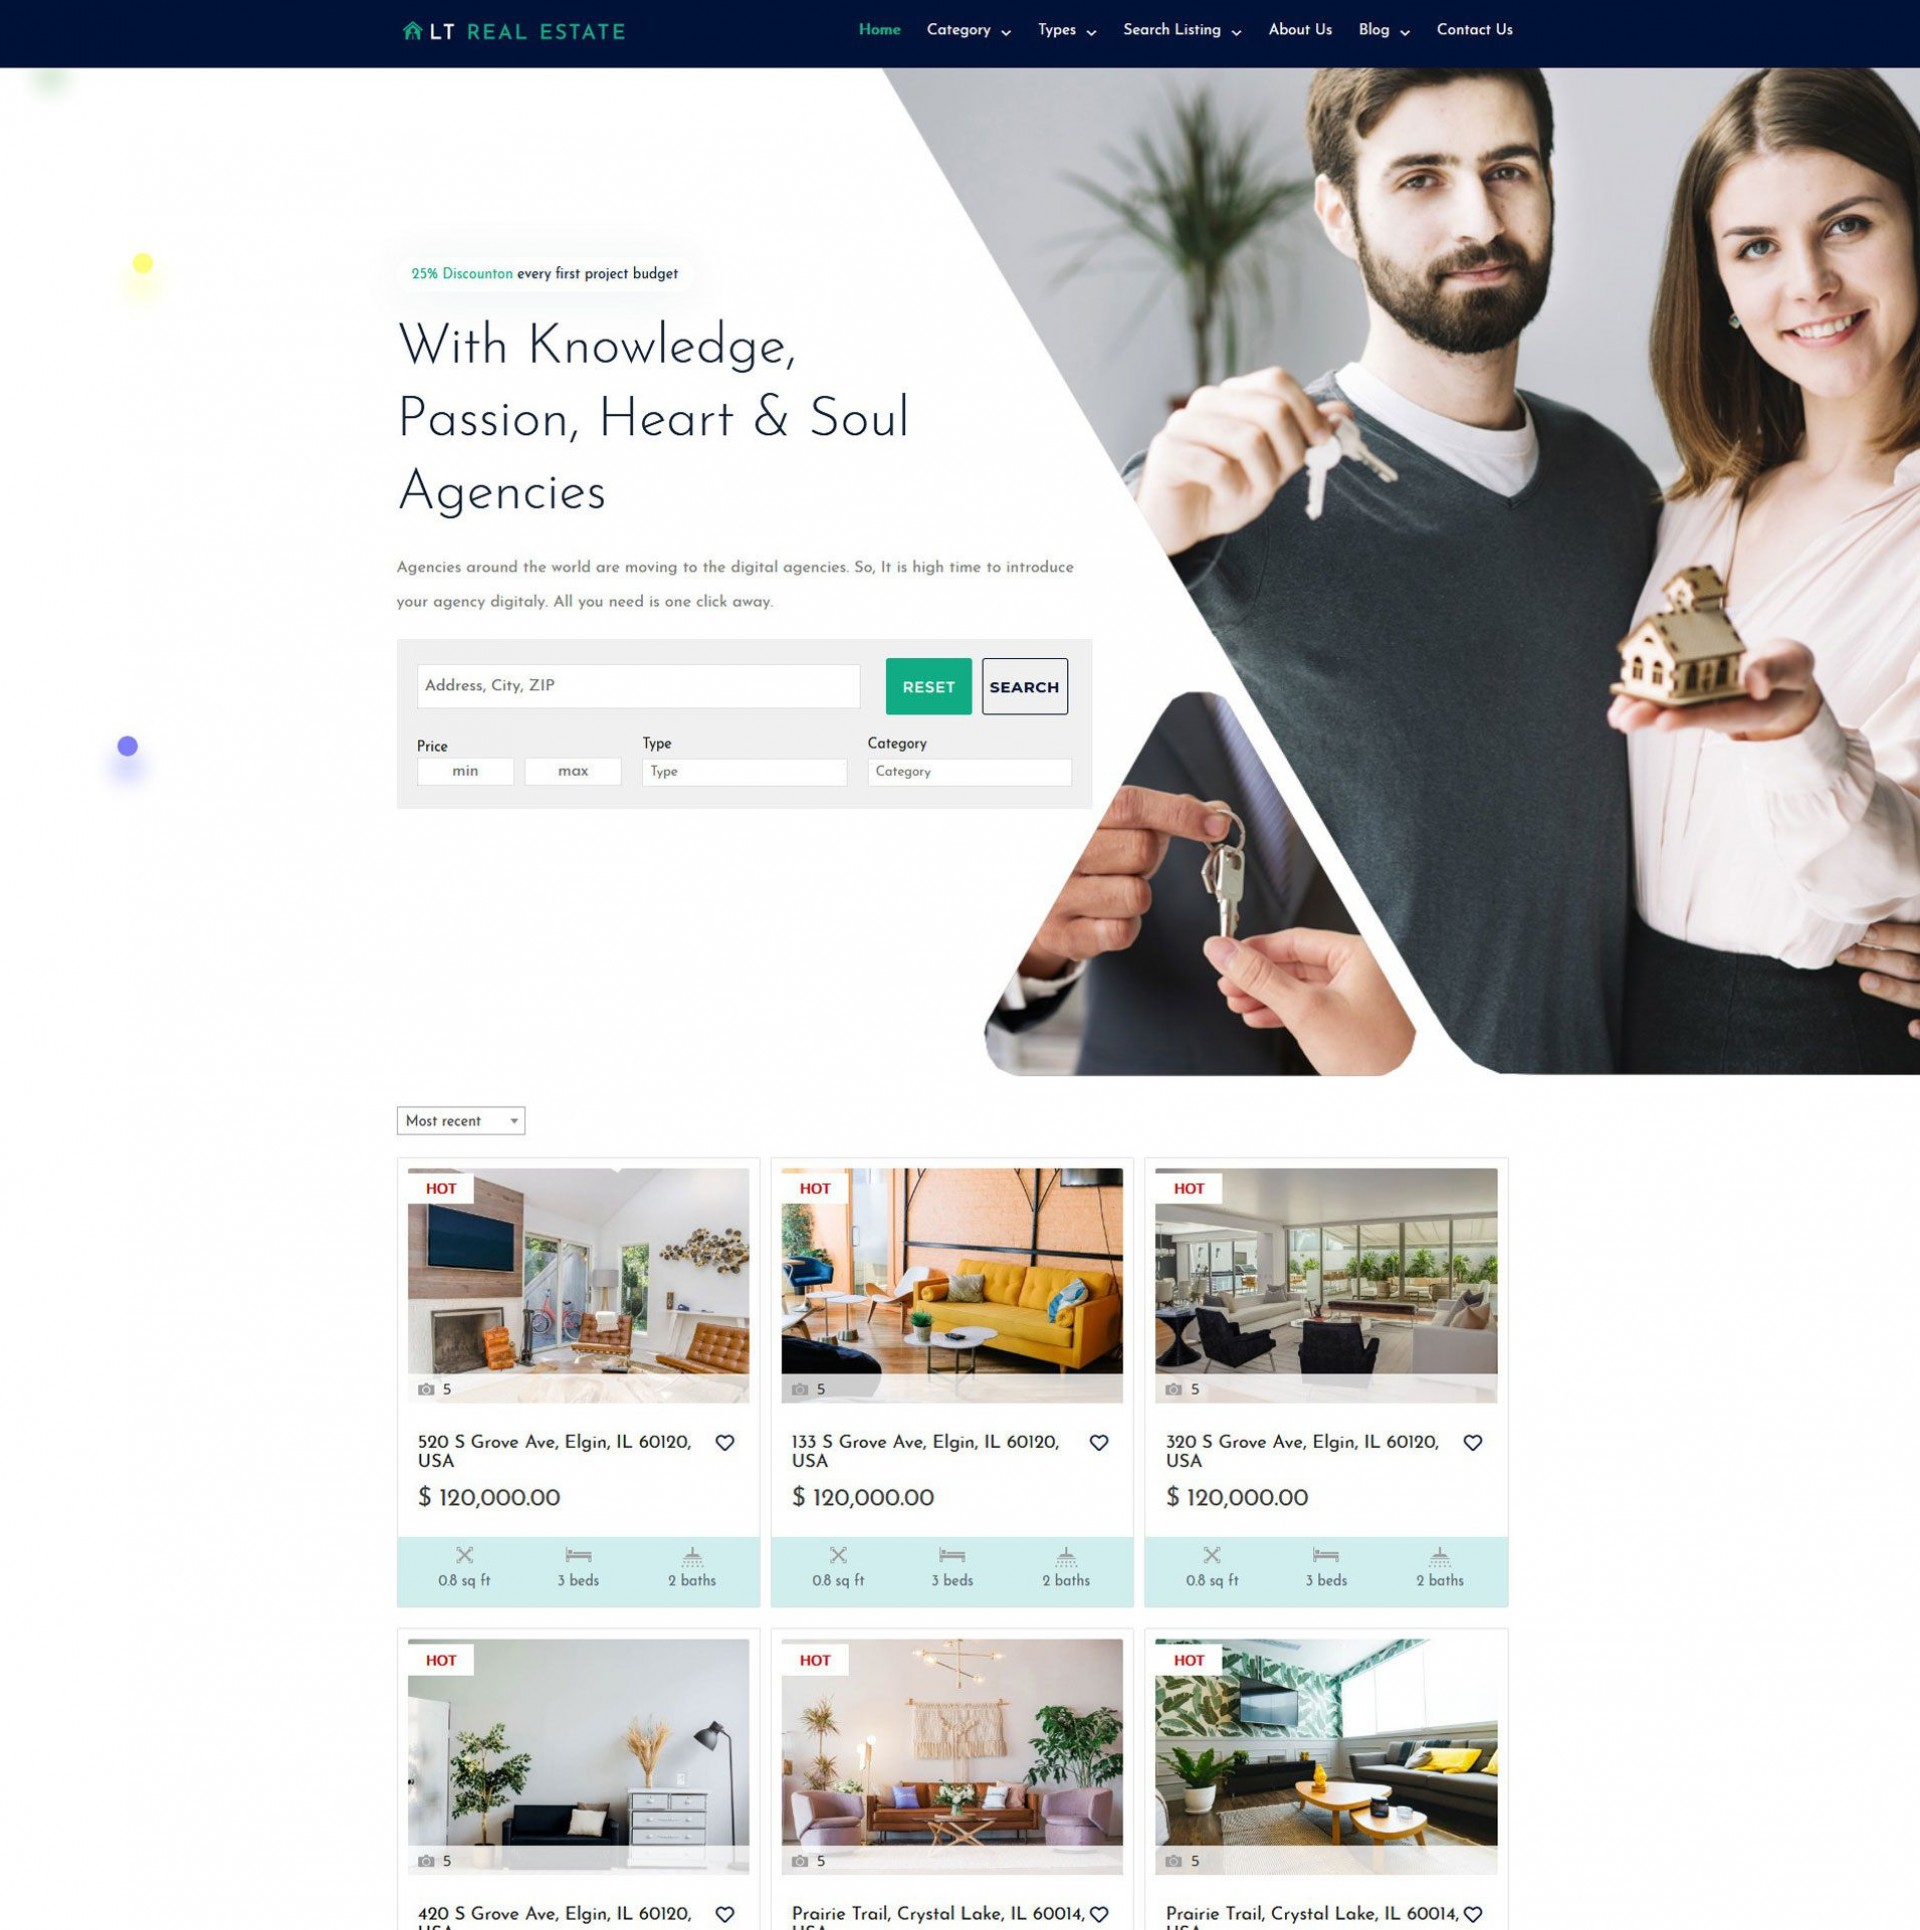 003 Rare Real Estate Template Wordpres Design  Homepres - Theme Free Download Realtyspace1920